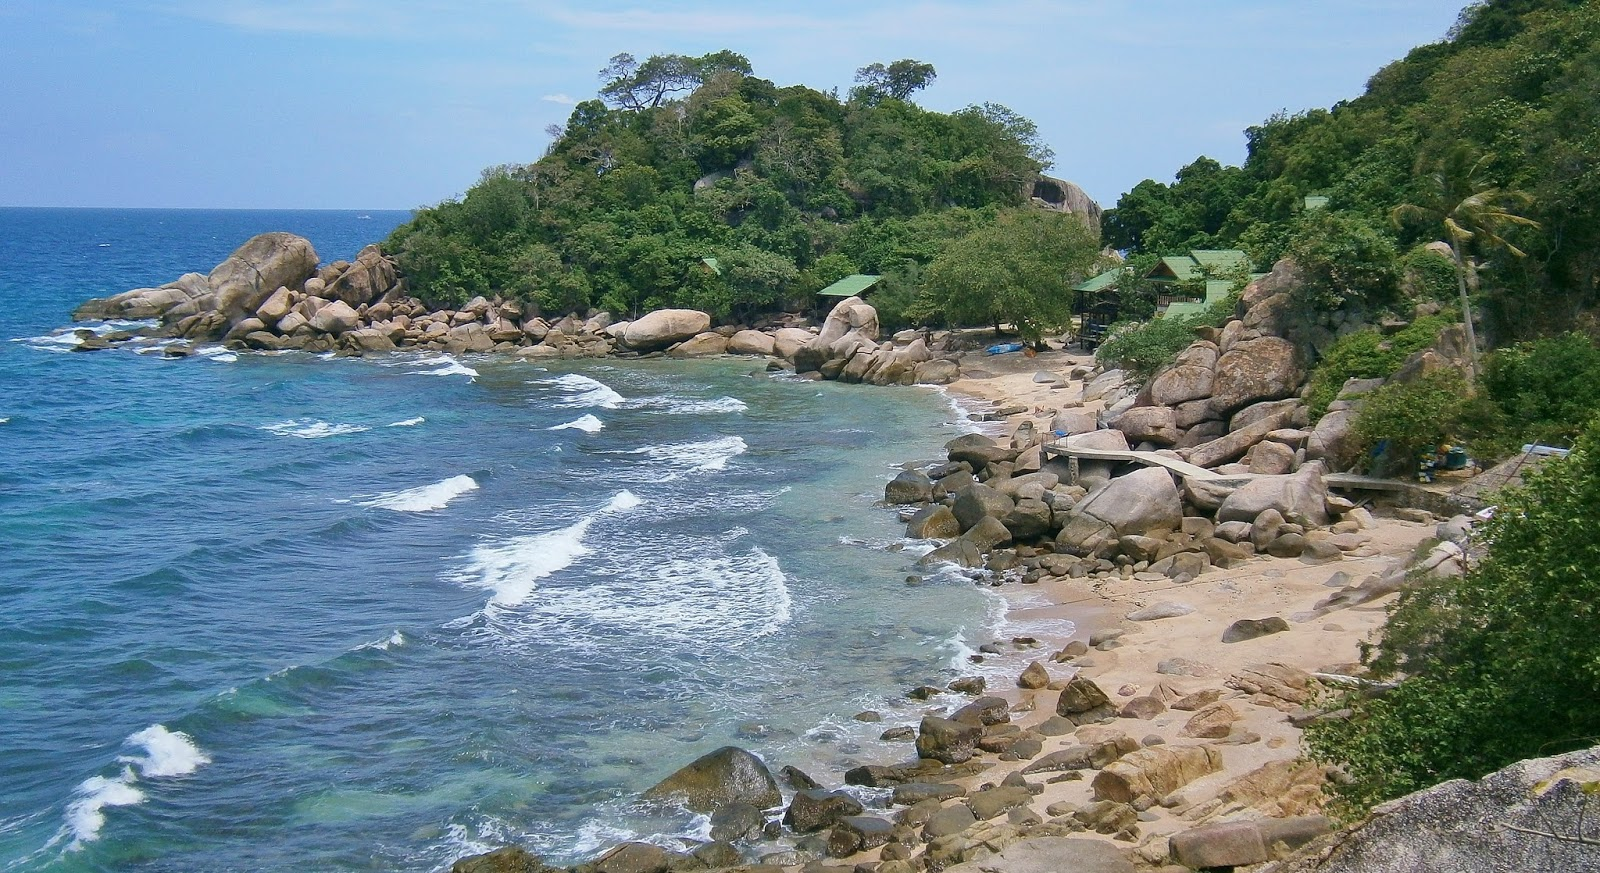 Fisherman Koh Tao - UPDATED Prices, Reviews & Photos